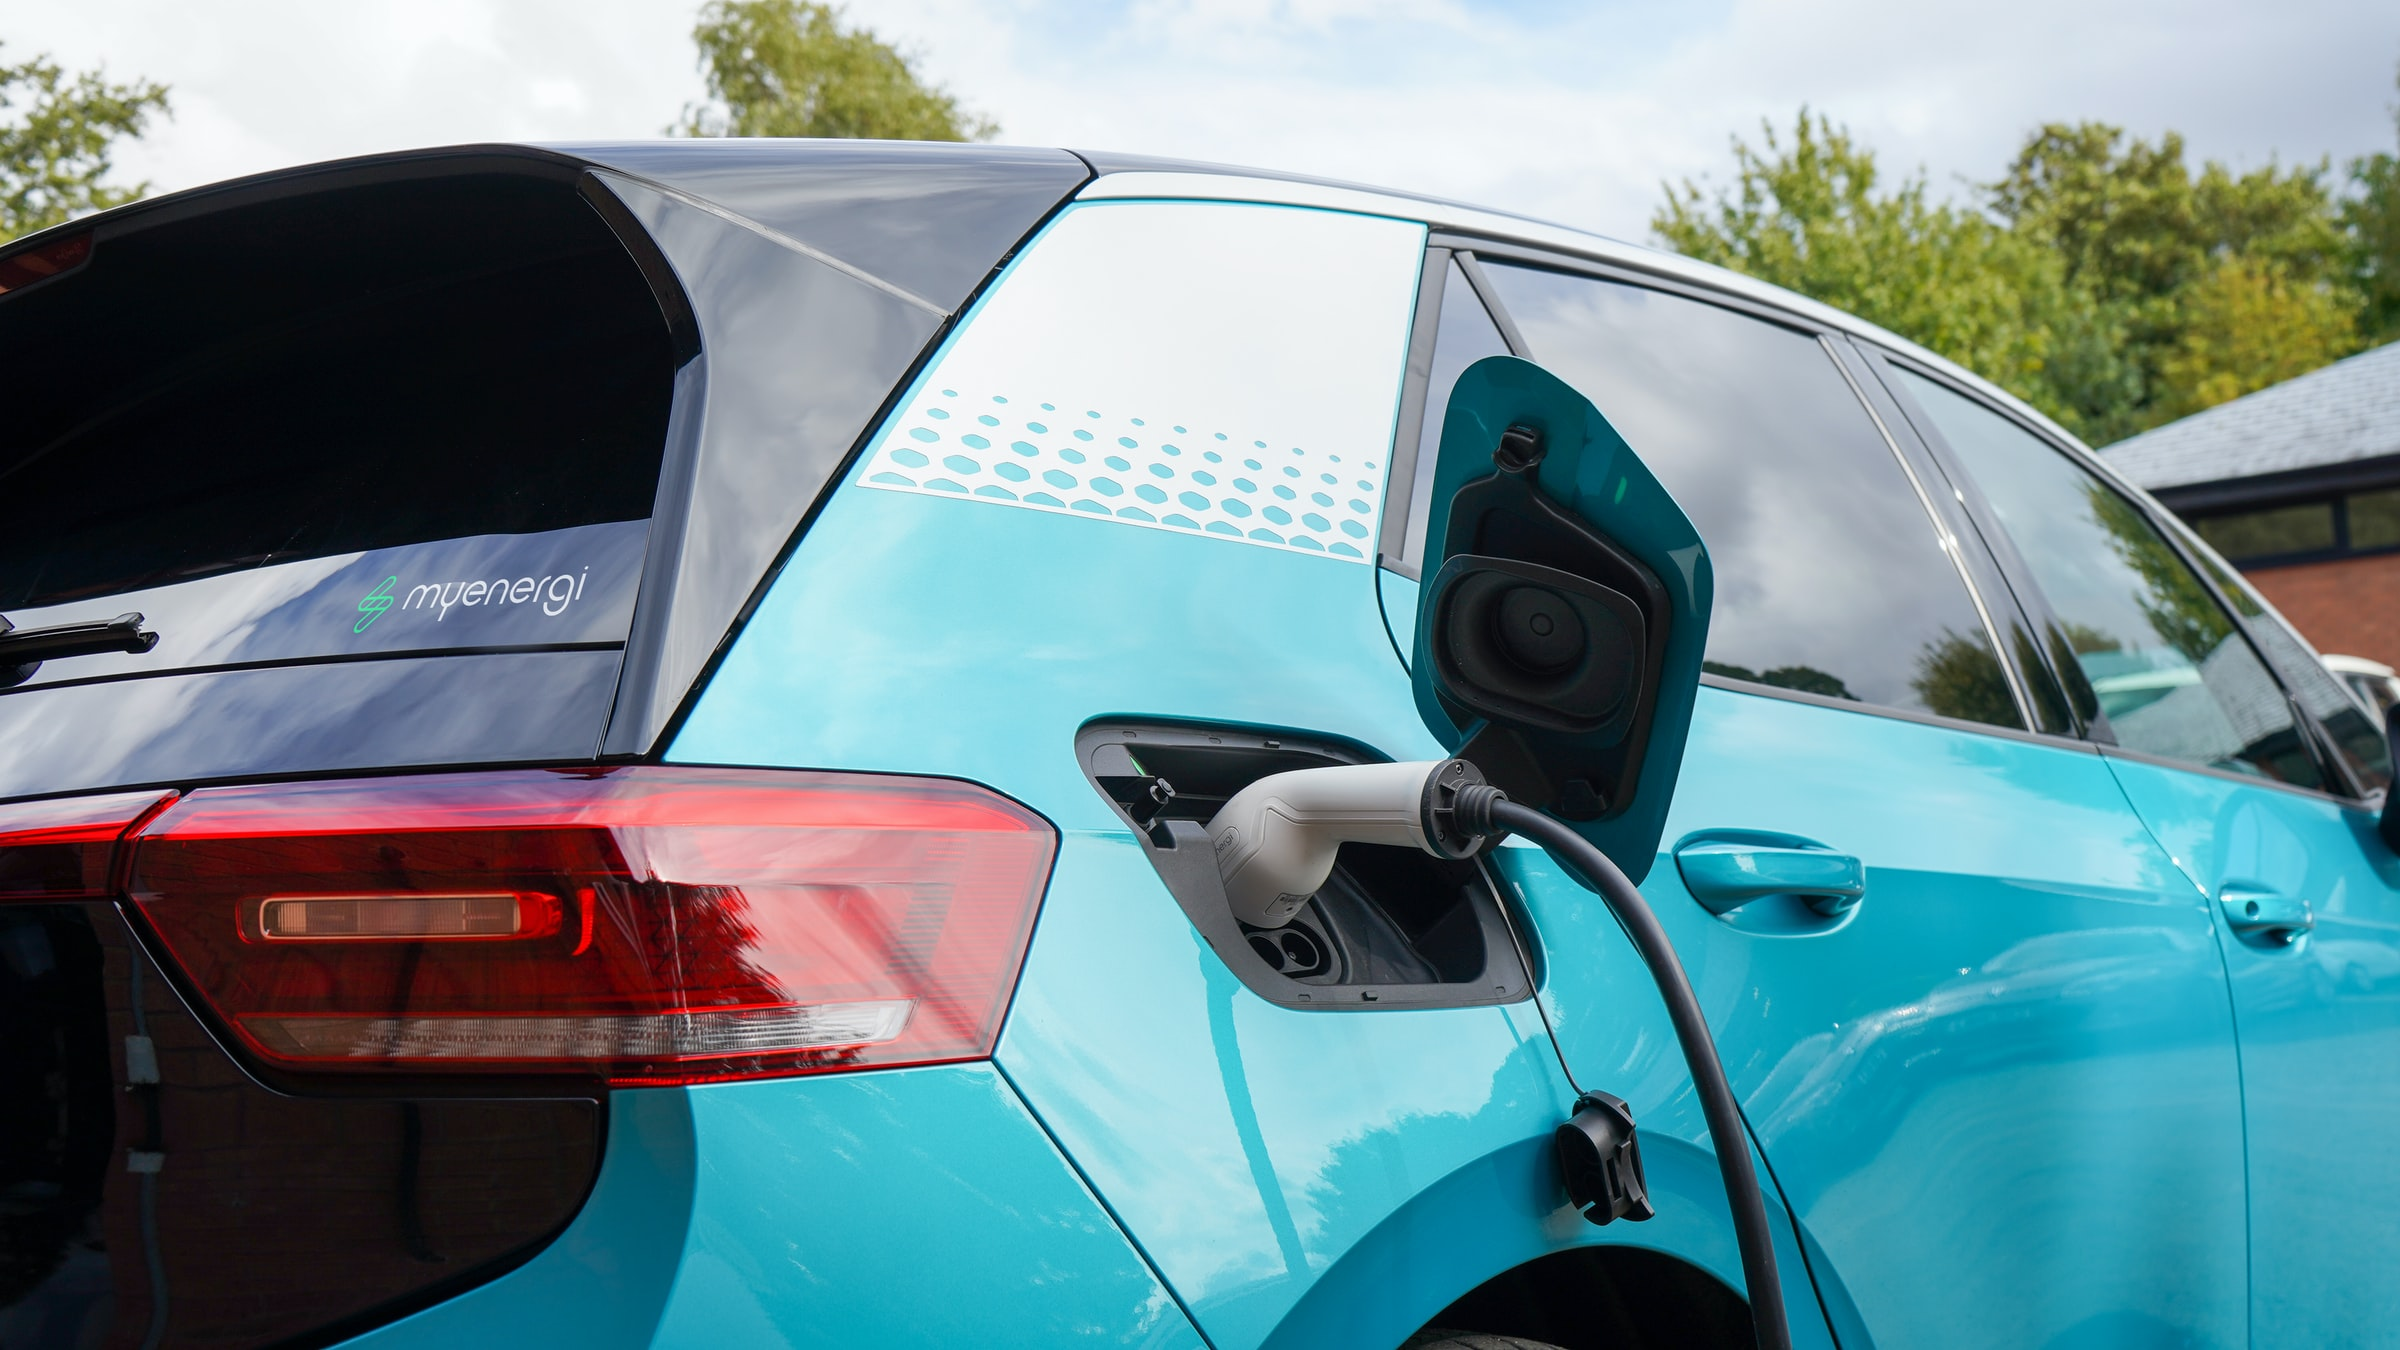 EVs save you money in the long run, especially on fuel costs.